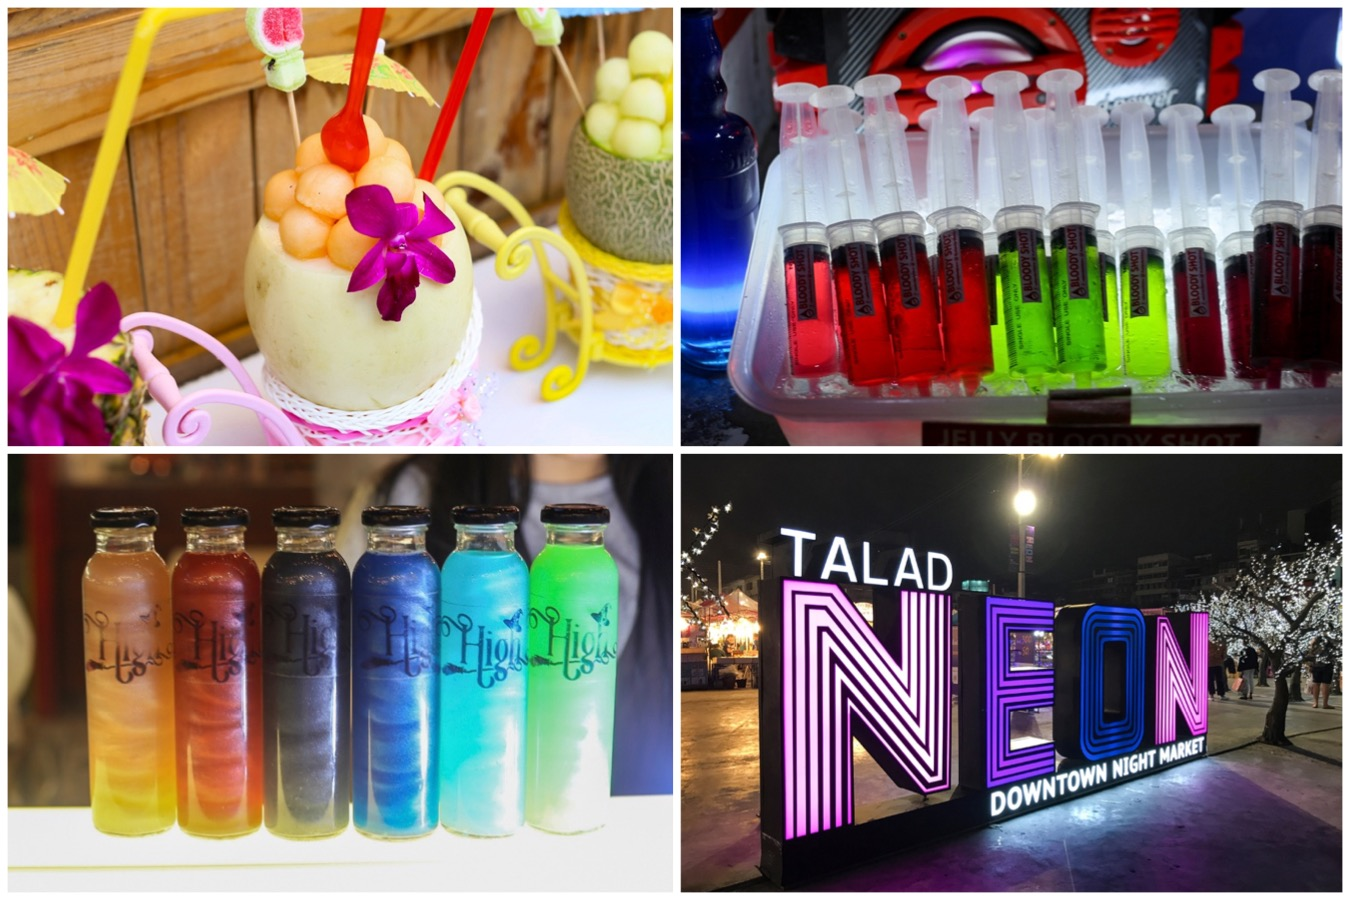 Talad Neon – Downtown Night Market At Bangkok With Hipster Food. Slightly Underwhelming